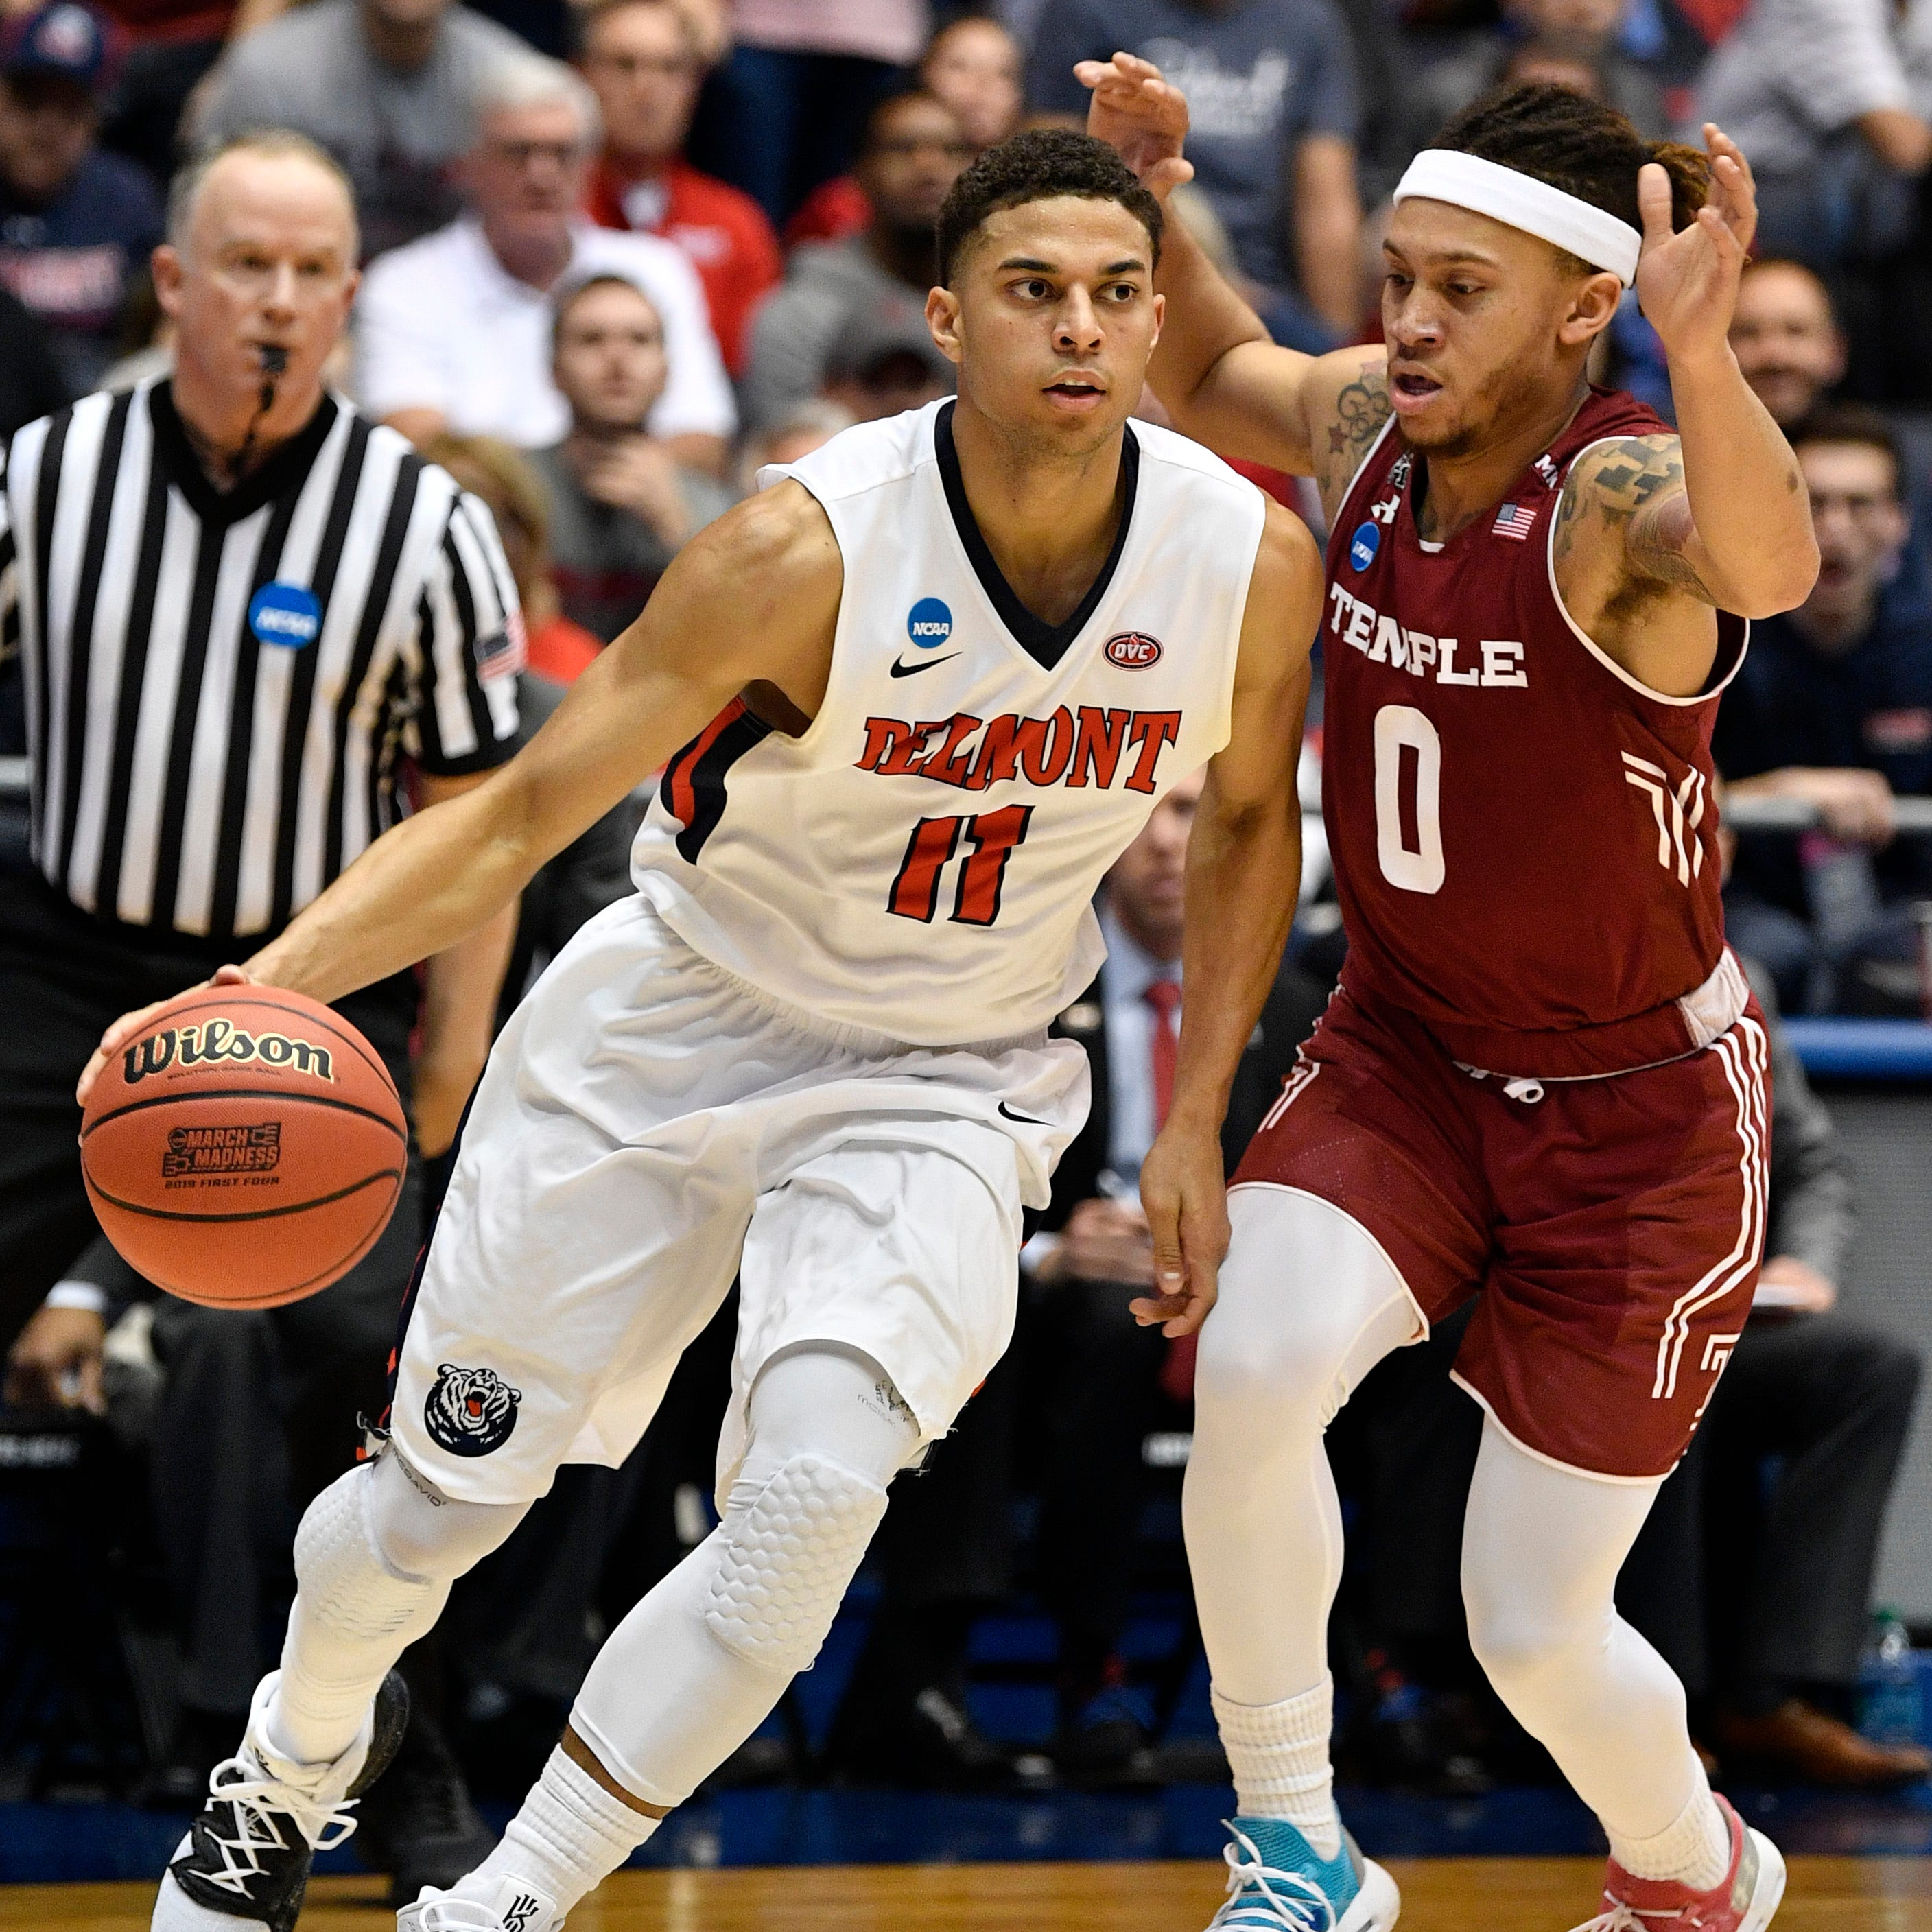 Belmont claims first NCAA Tournament victory; beats Temple 81-70